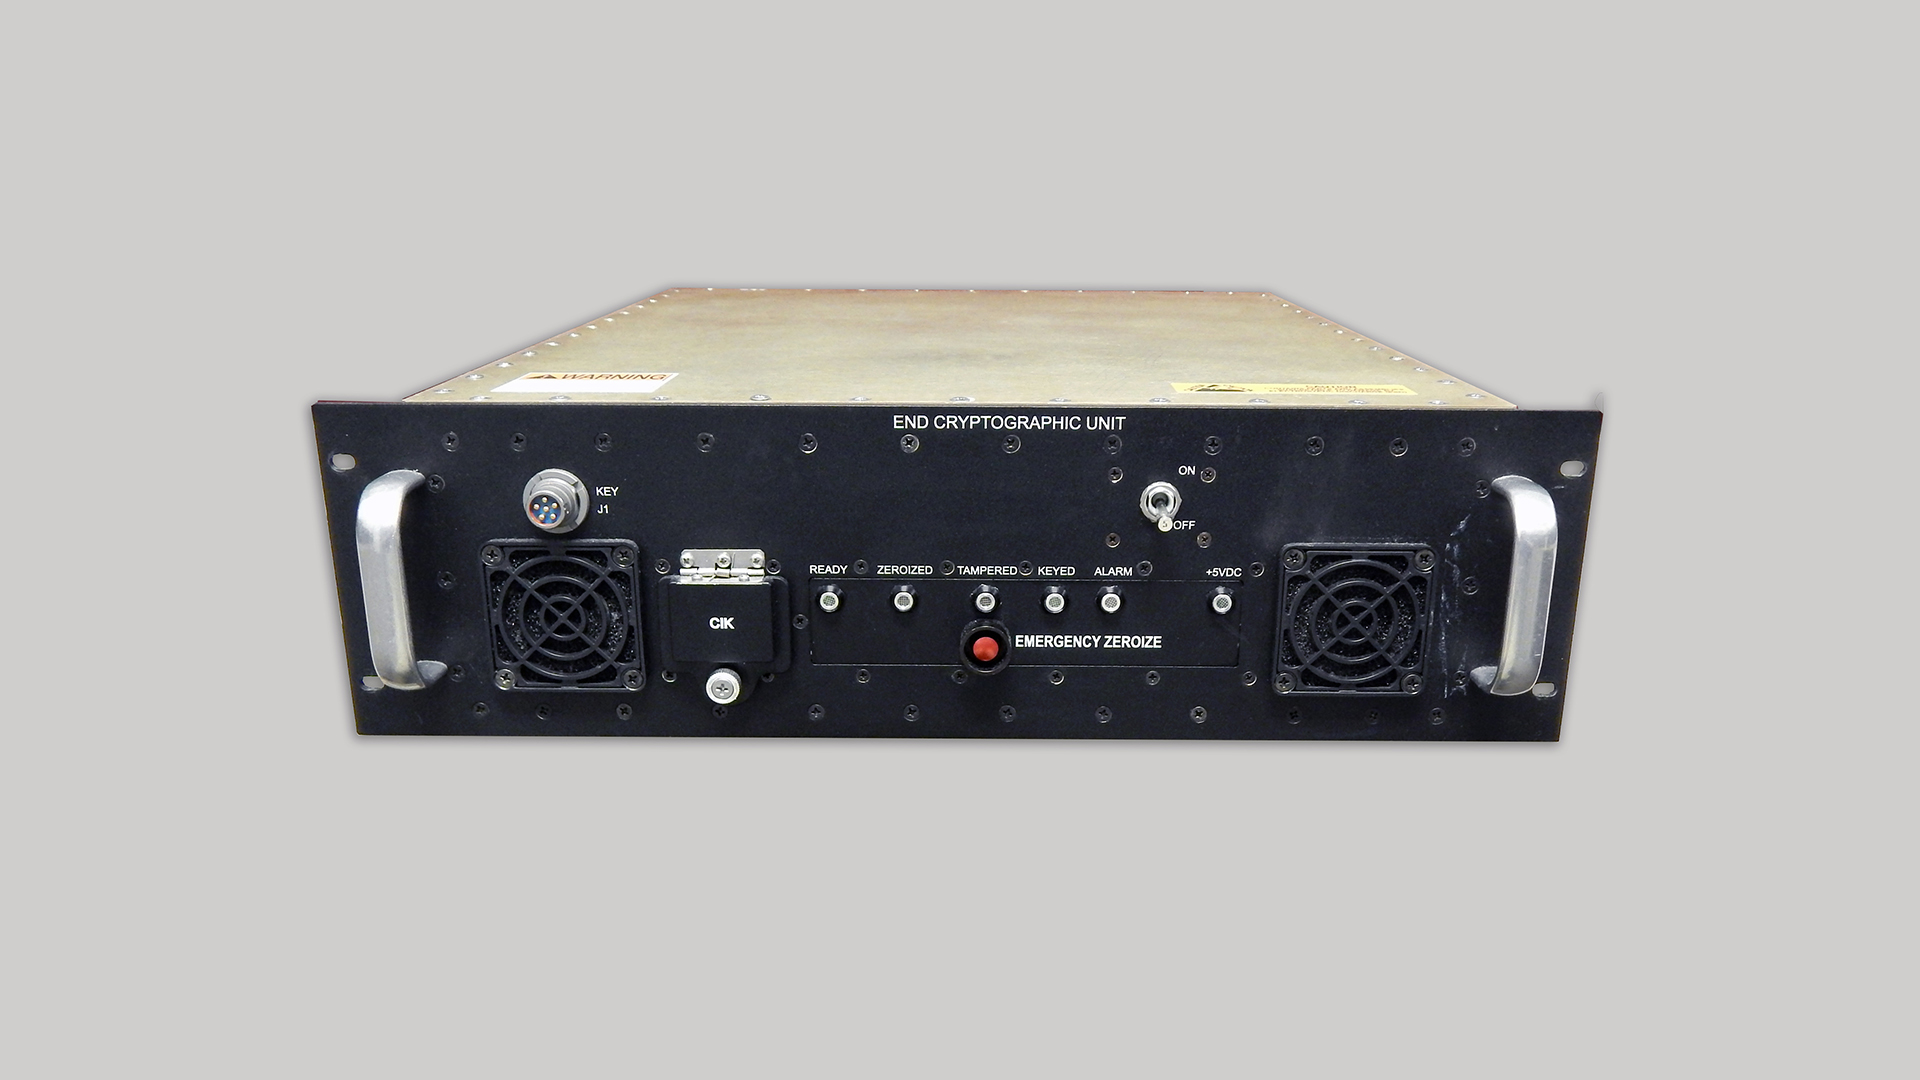 Image of KOV-74 Network Encryptor box